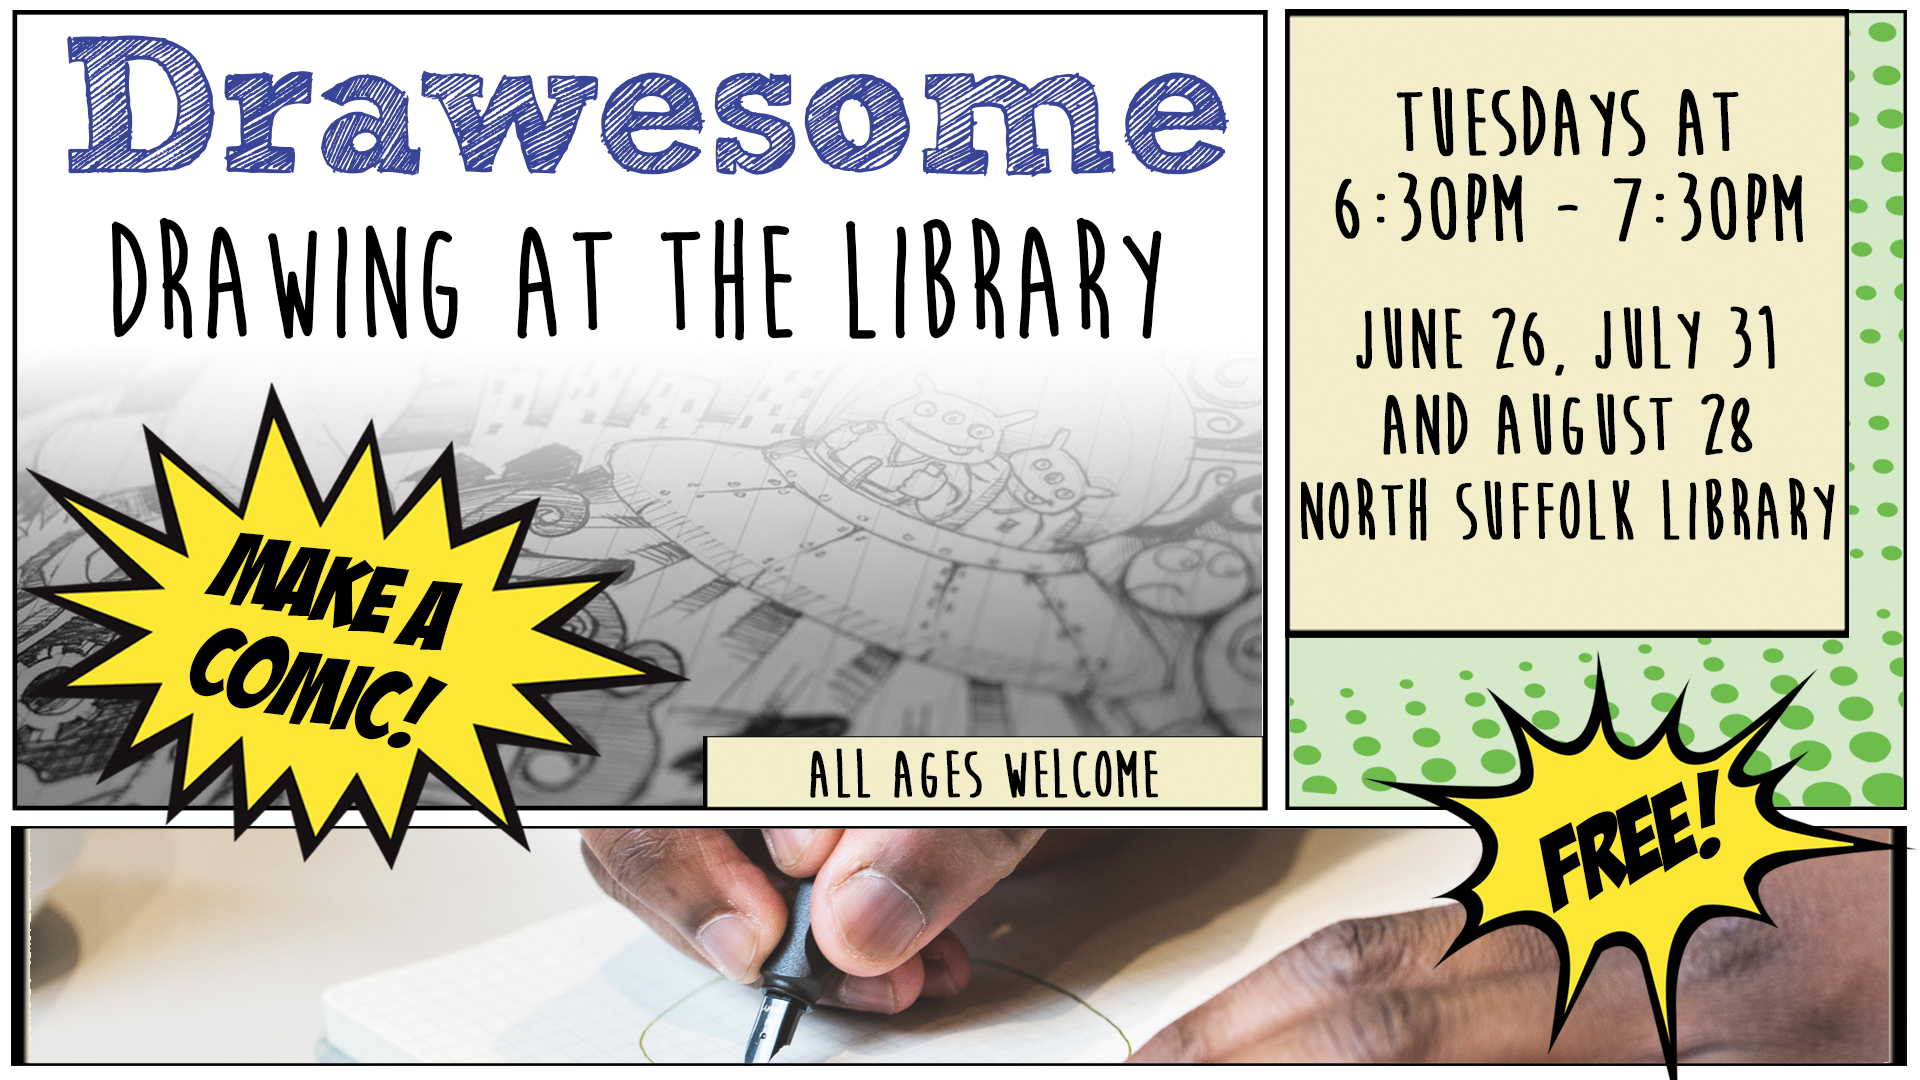 Drawesome @ the Library